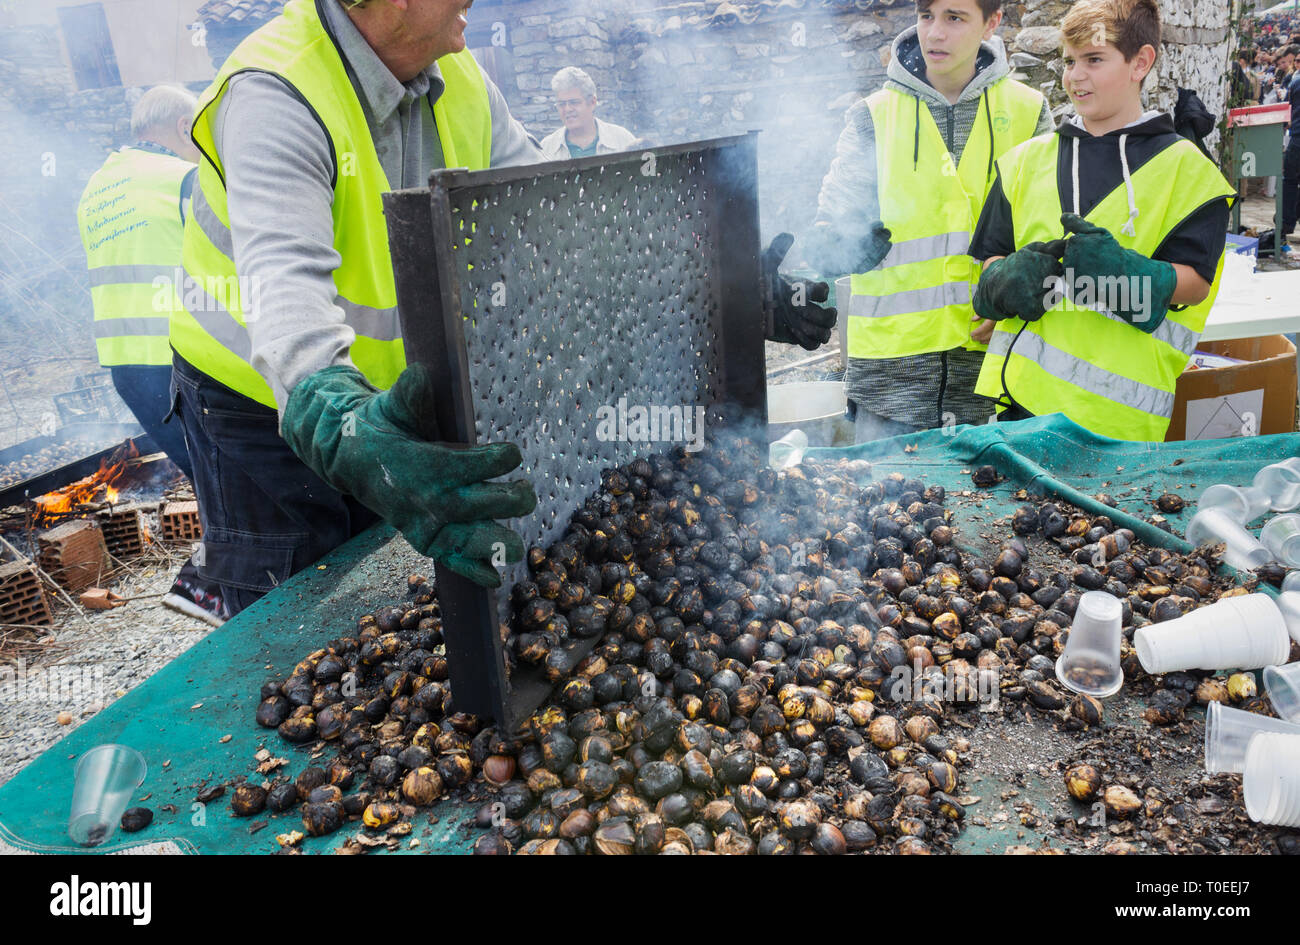 A roaster turns out roasted chestnuts from a smoky tray on a sorting table at the annual traditional customary of Livadi village, Thessalonica, Greece - Stock Image